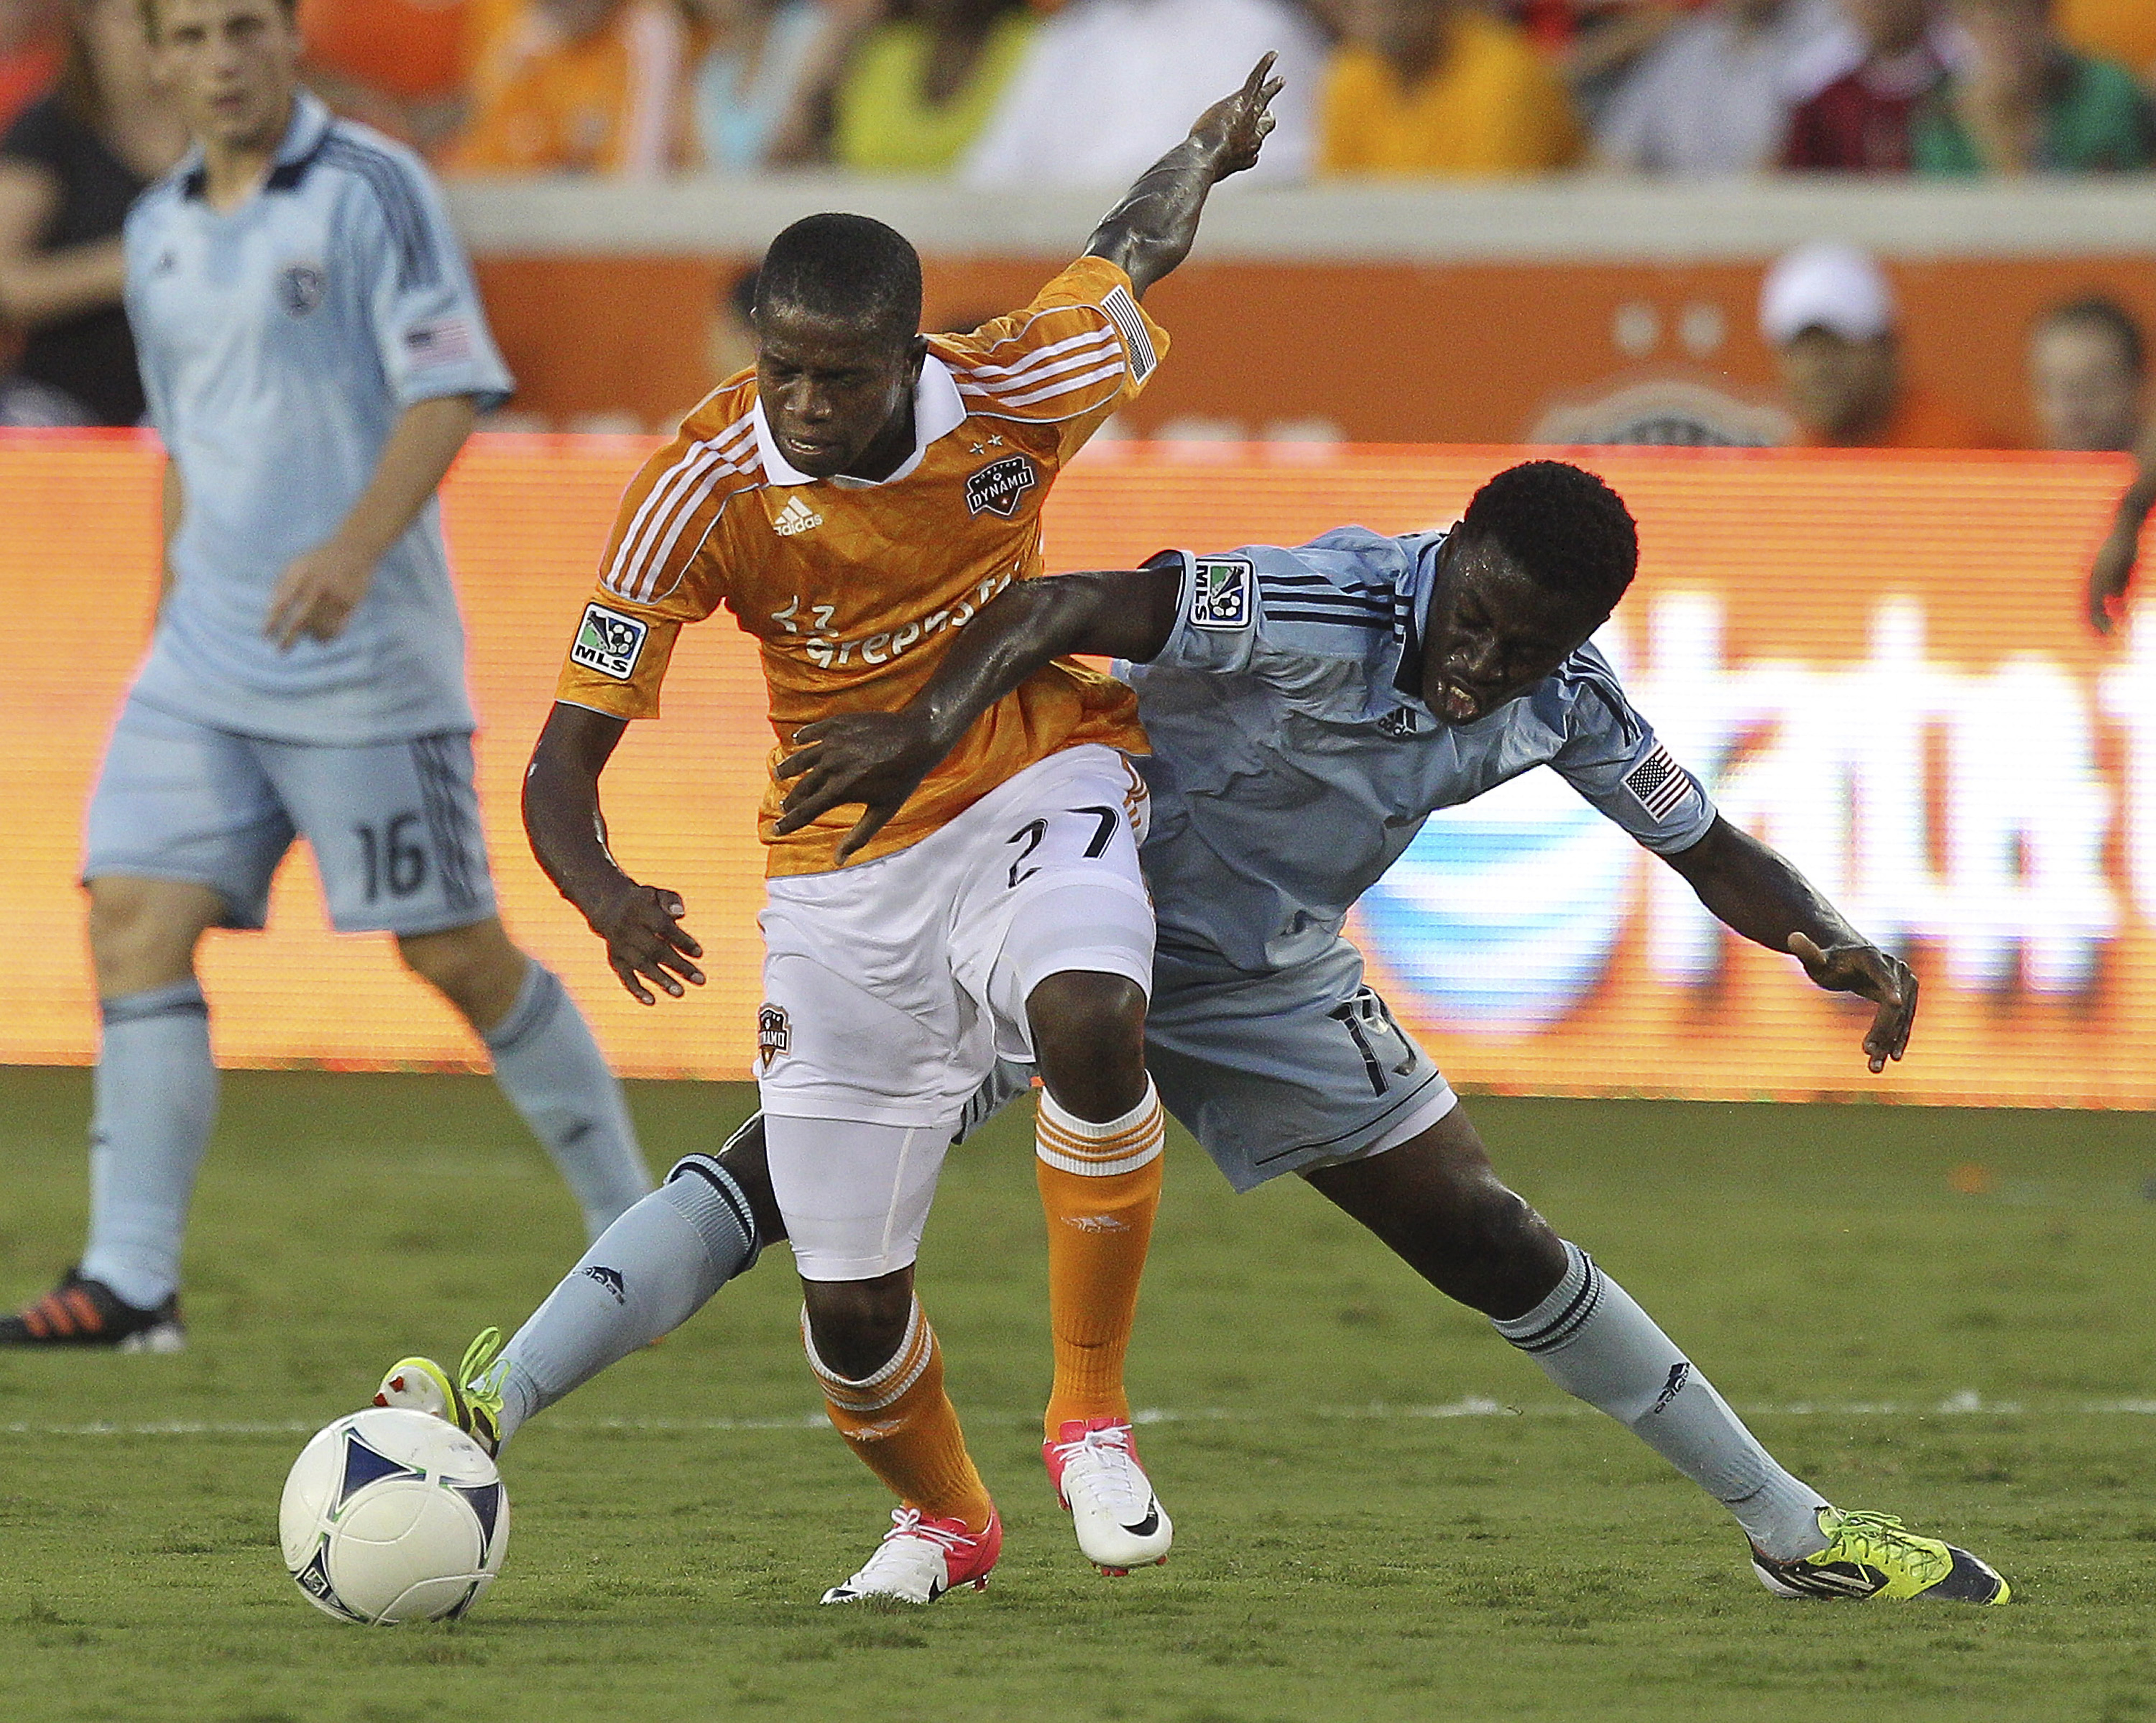 HOUSTON - JULY 18:  Boniek Garcia #27 of the Houston Dynamo keeps the ball away from Peterson Joseph #19 of the Sporting KC in the first half at BBVA Compass Stadium on July 18, 2012 in Houston, Texas.  (Photo by Bob Levey/Getty Images)